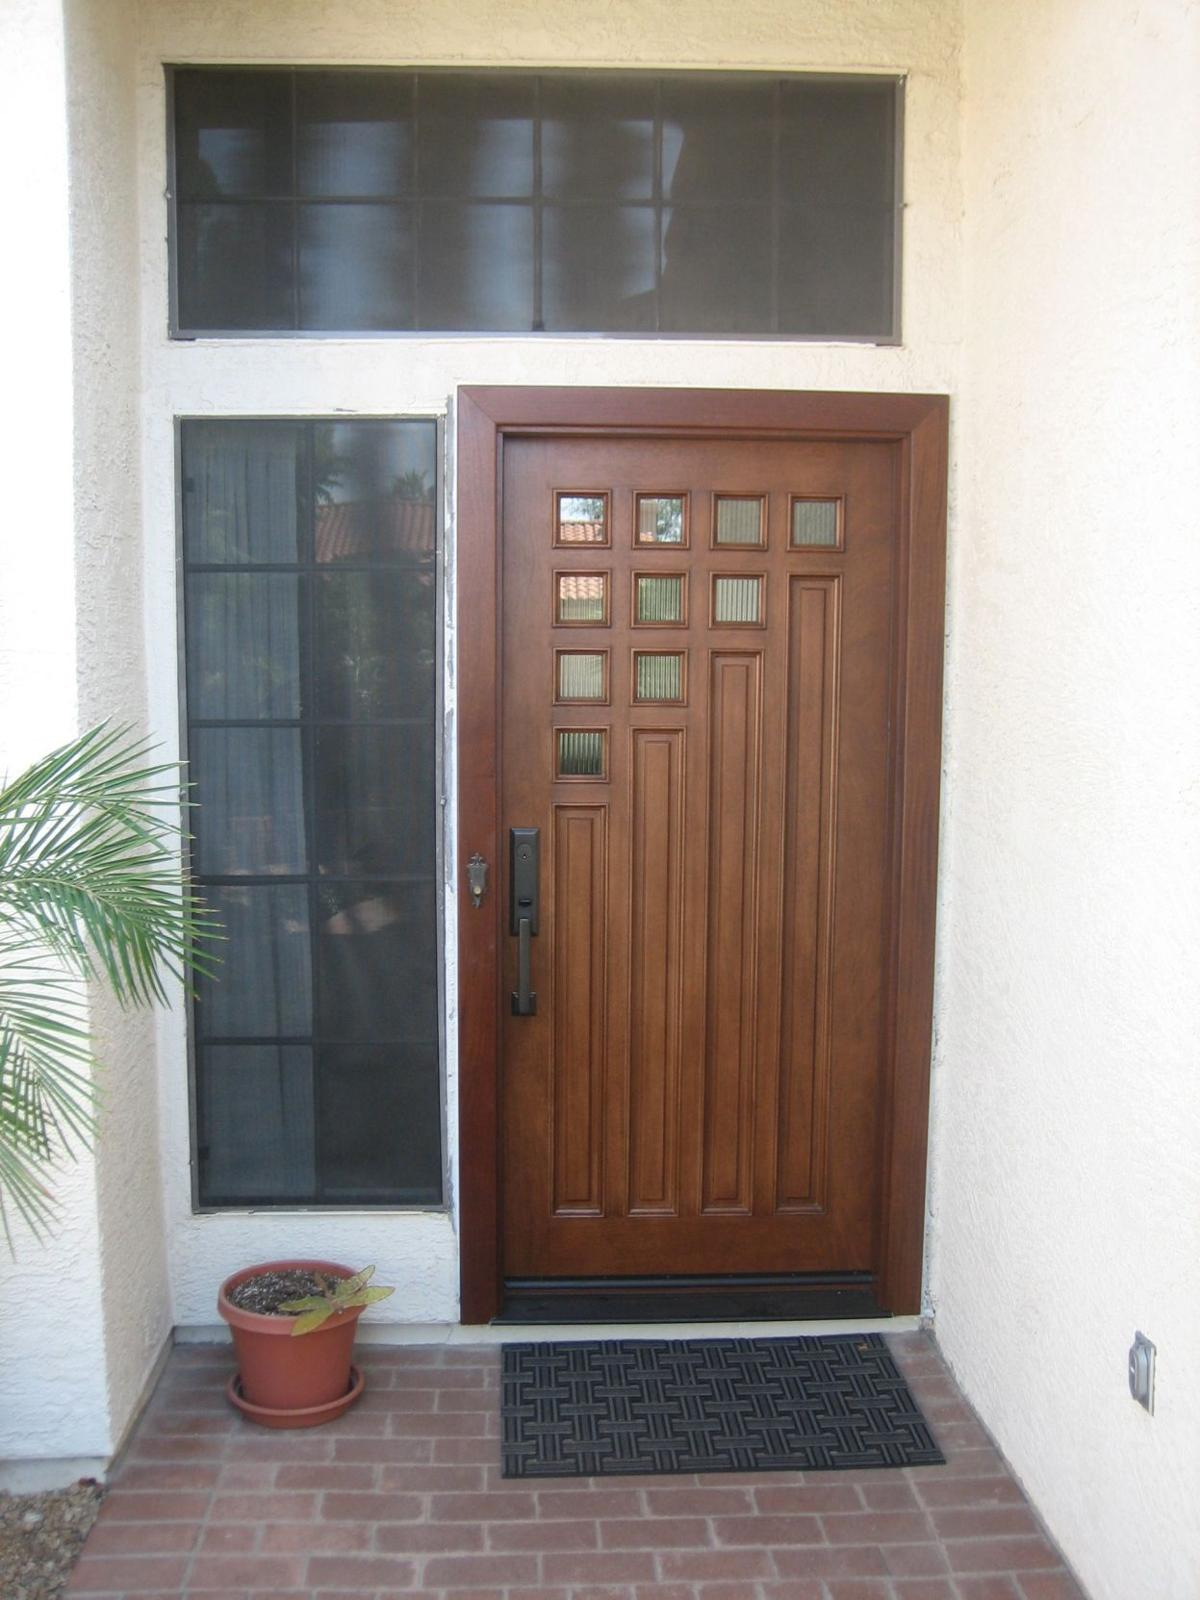 Rosie on the House: Spiff up front door when selling home